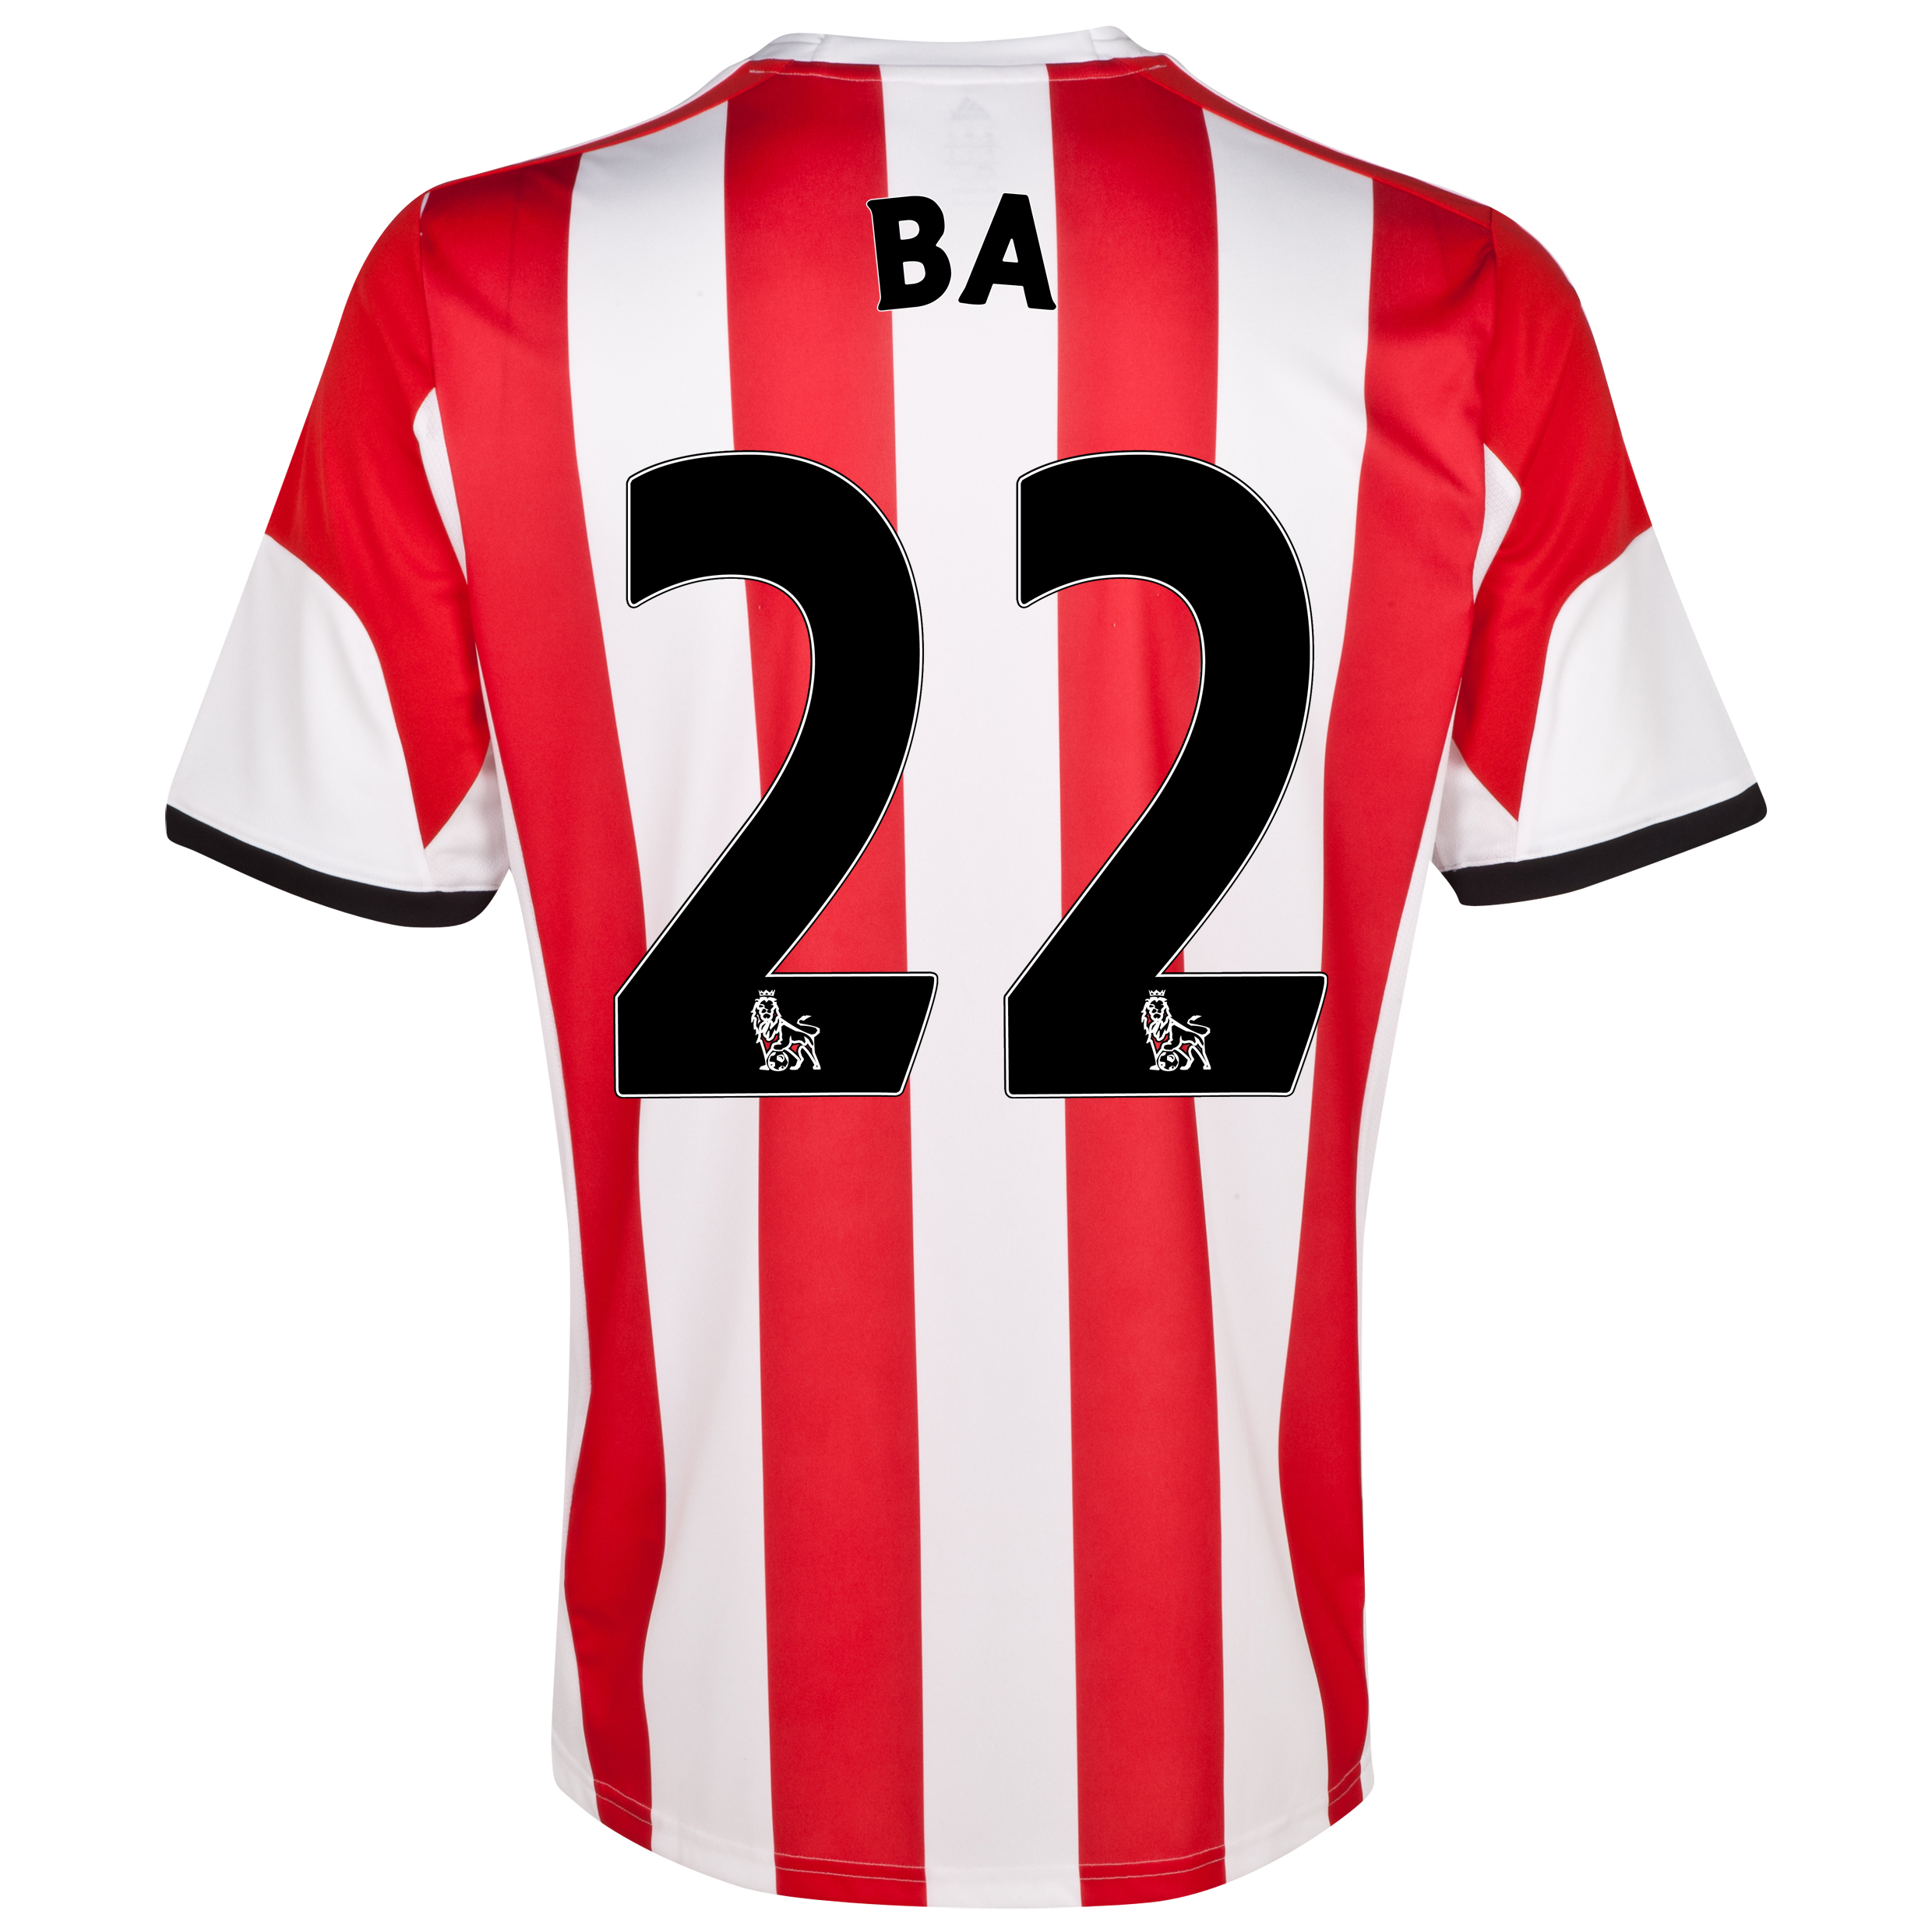 Sunderland Home Shirt 2013/14 with Ba 22 printing